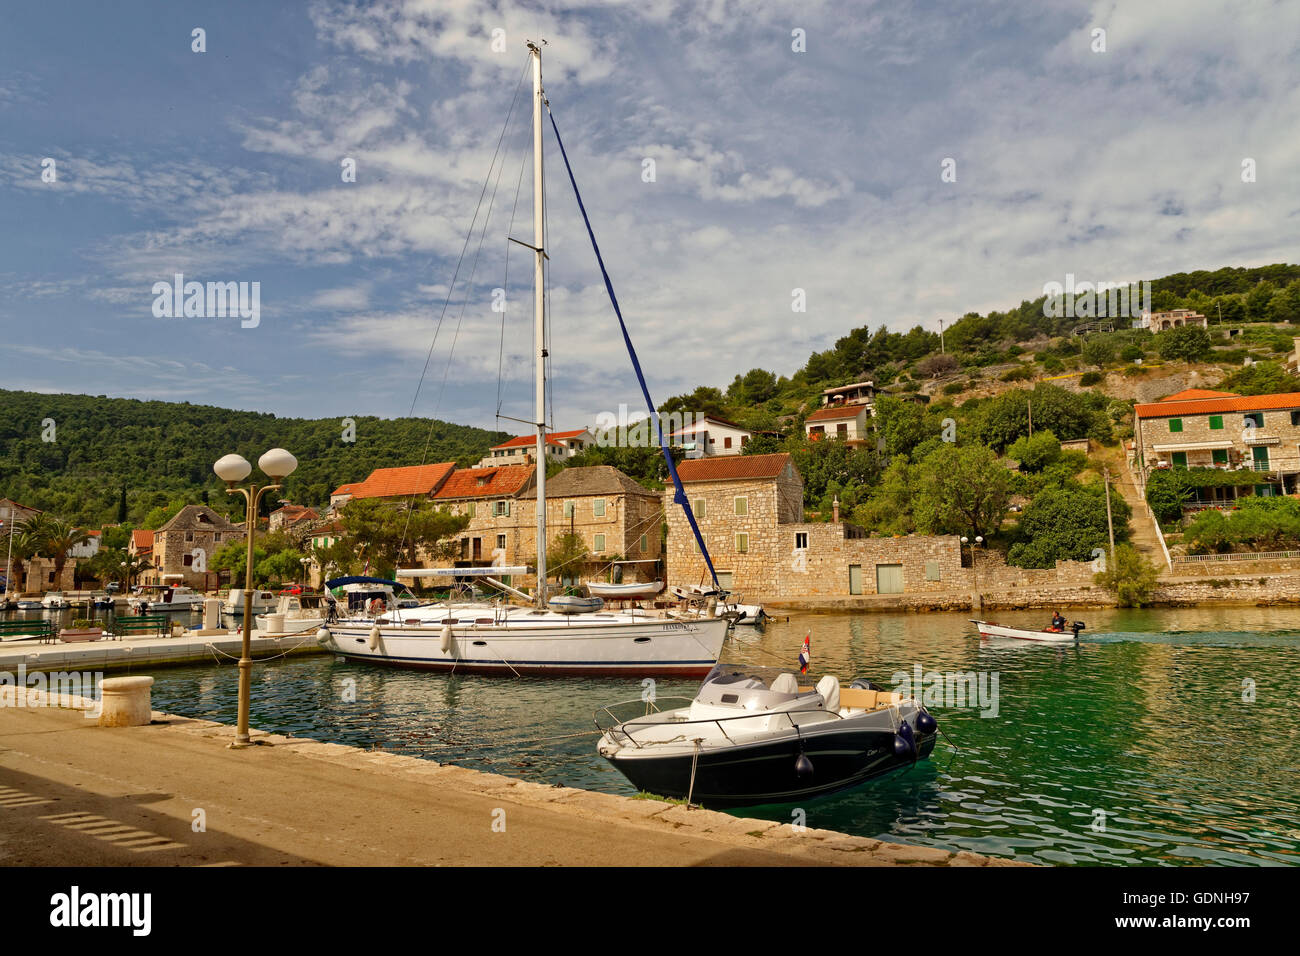 Cruising yacht berthed at the village quay of Stomorska on the island of Solta in Croatia. - Stock Image